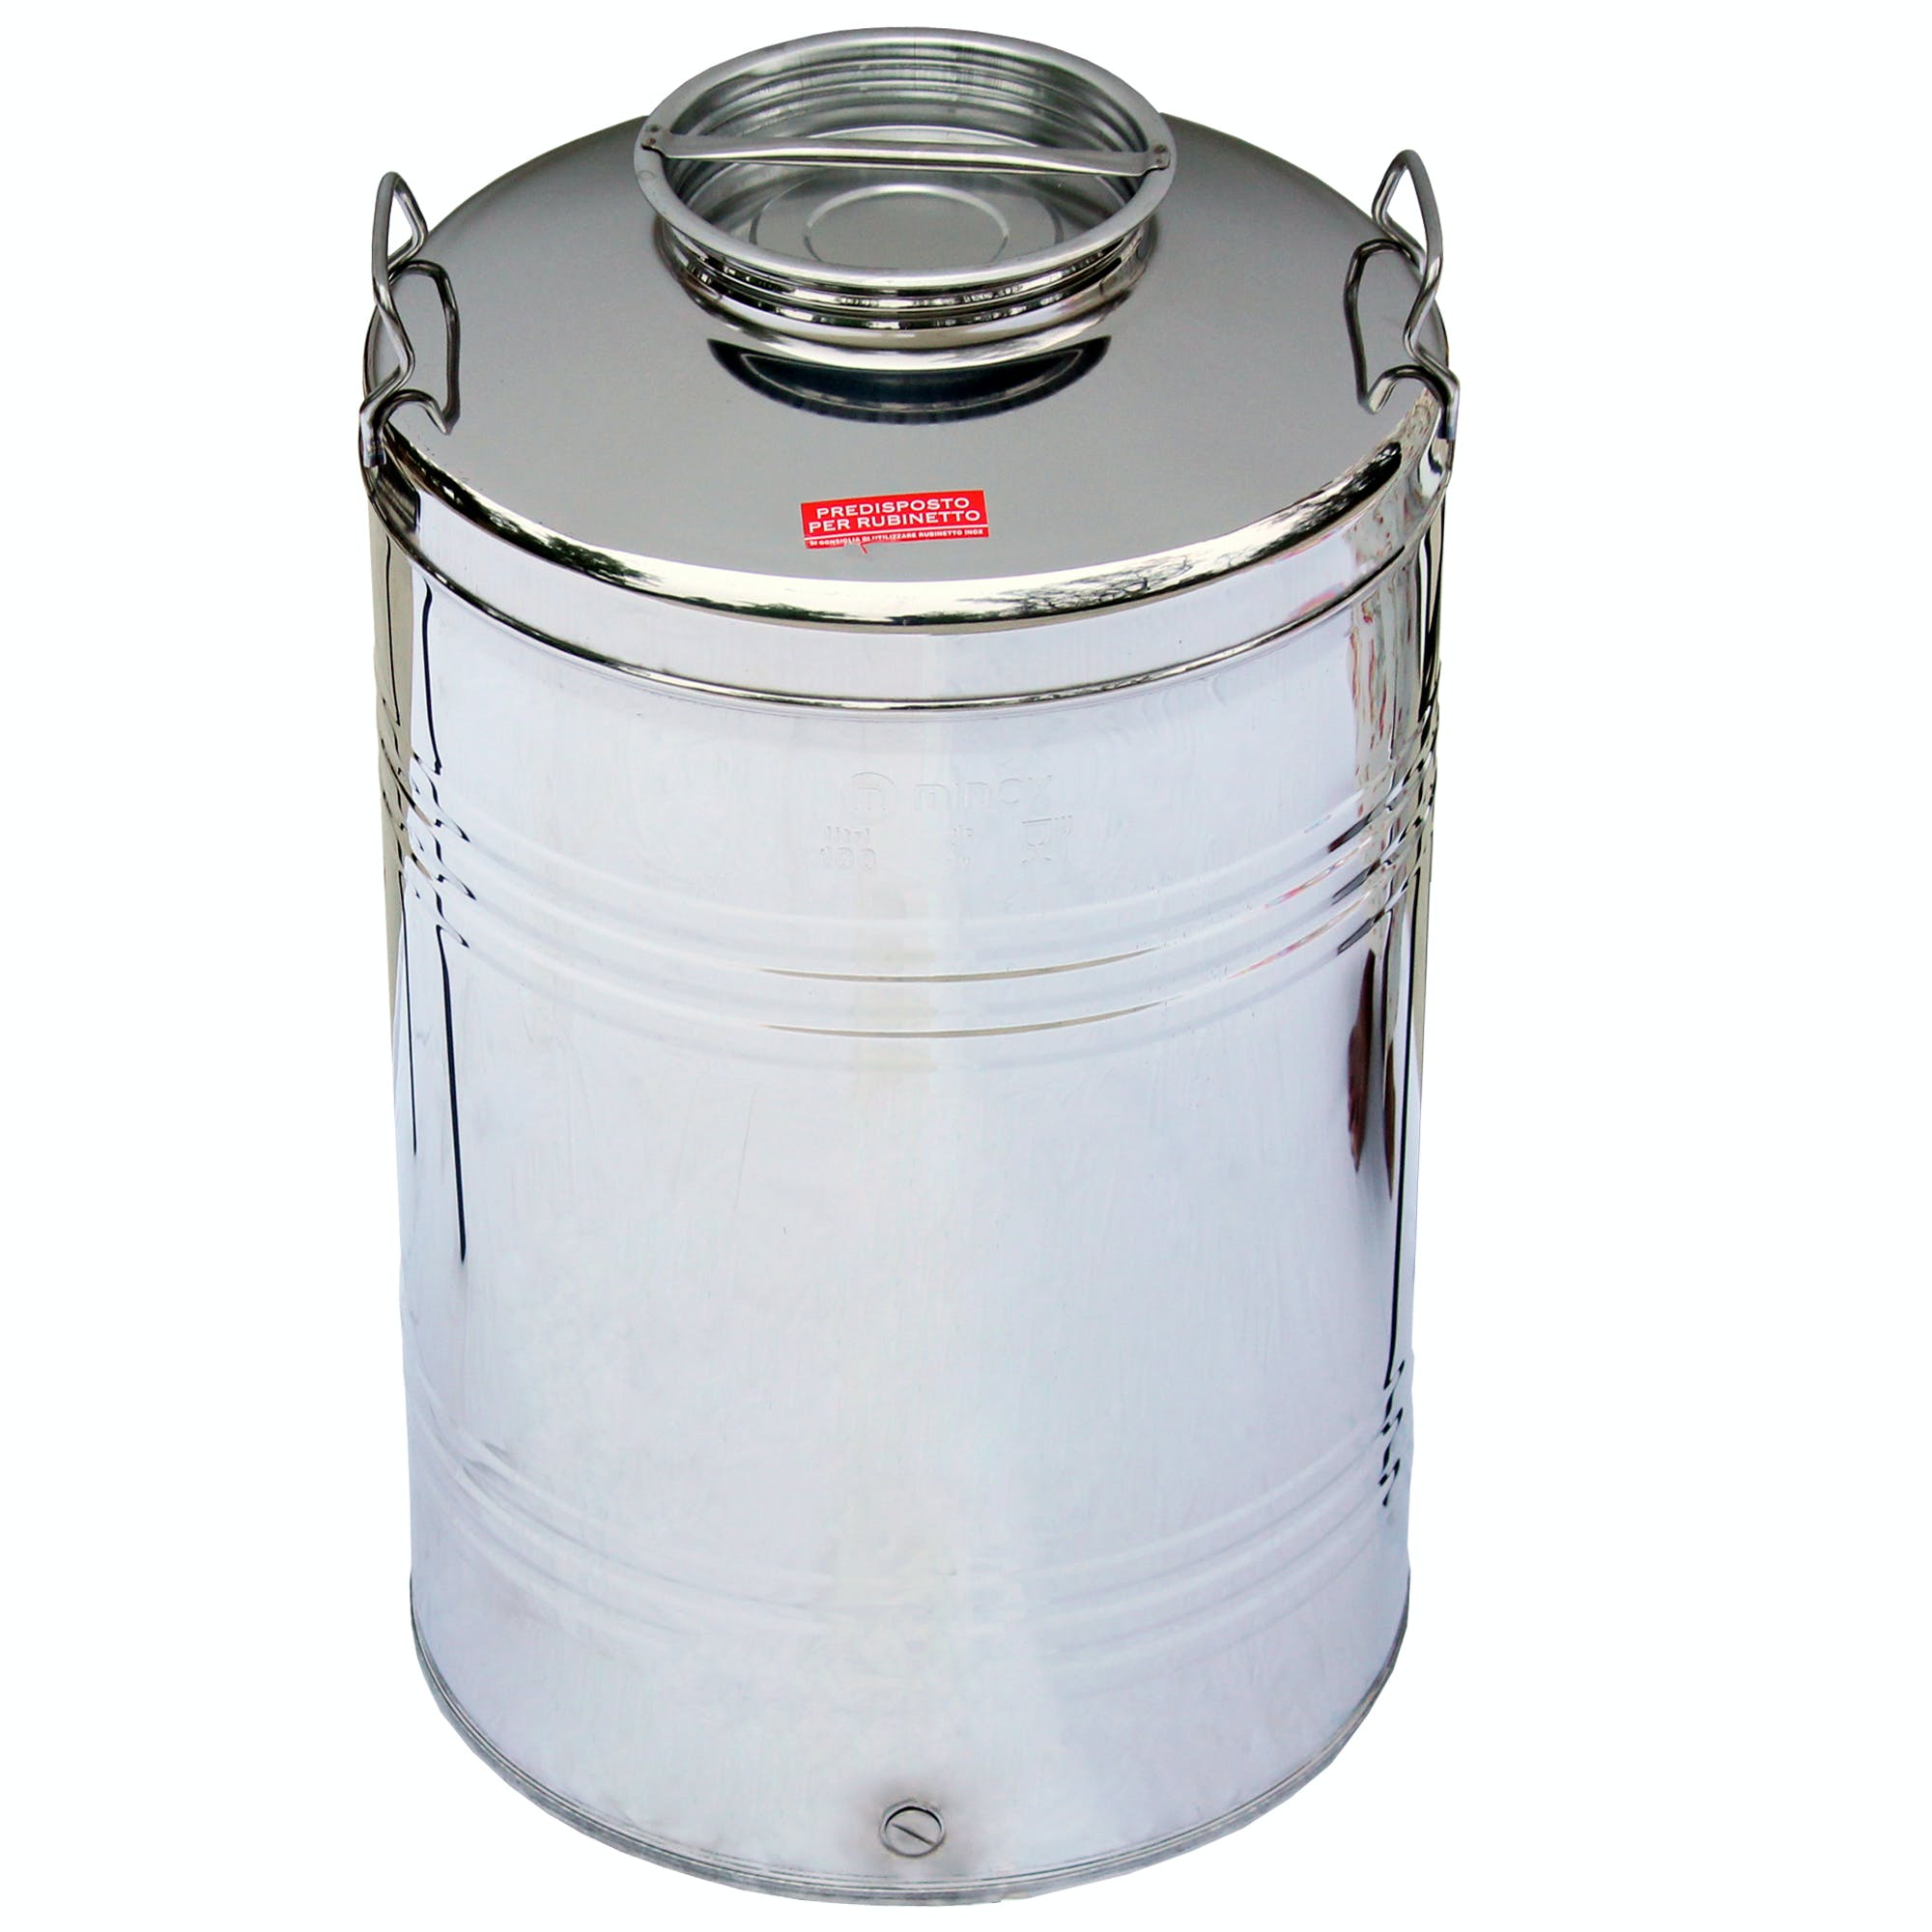 Italian Made Stainless Steel Fusti-100 Liters Steel fusto sold by M5 Corporation